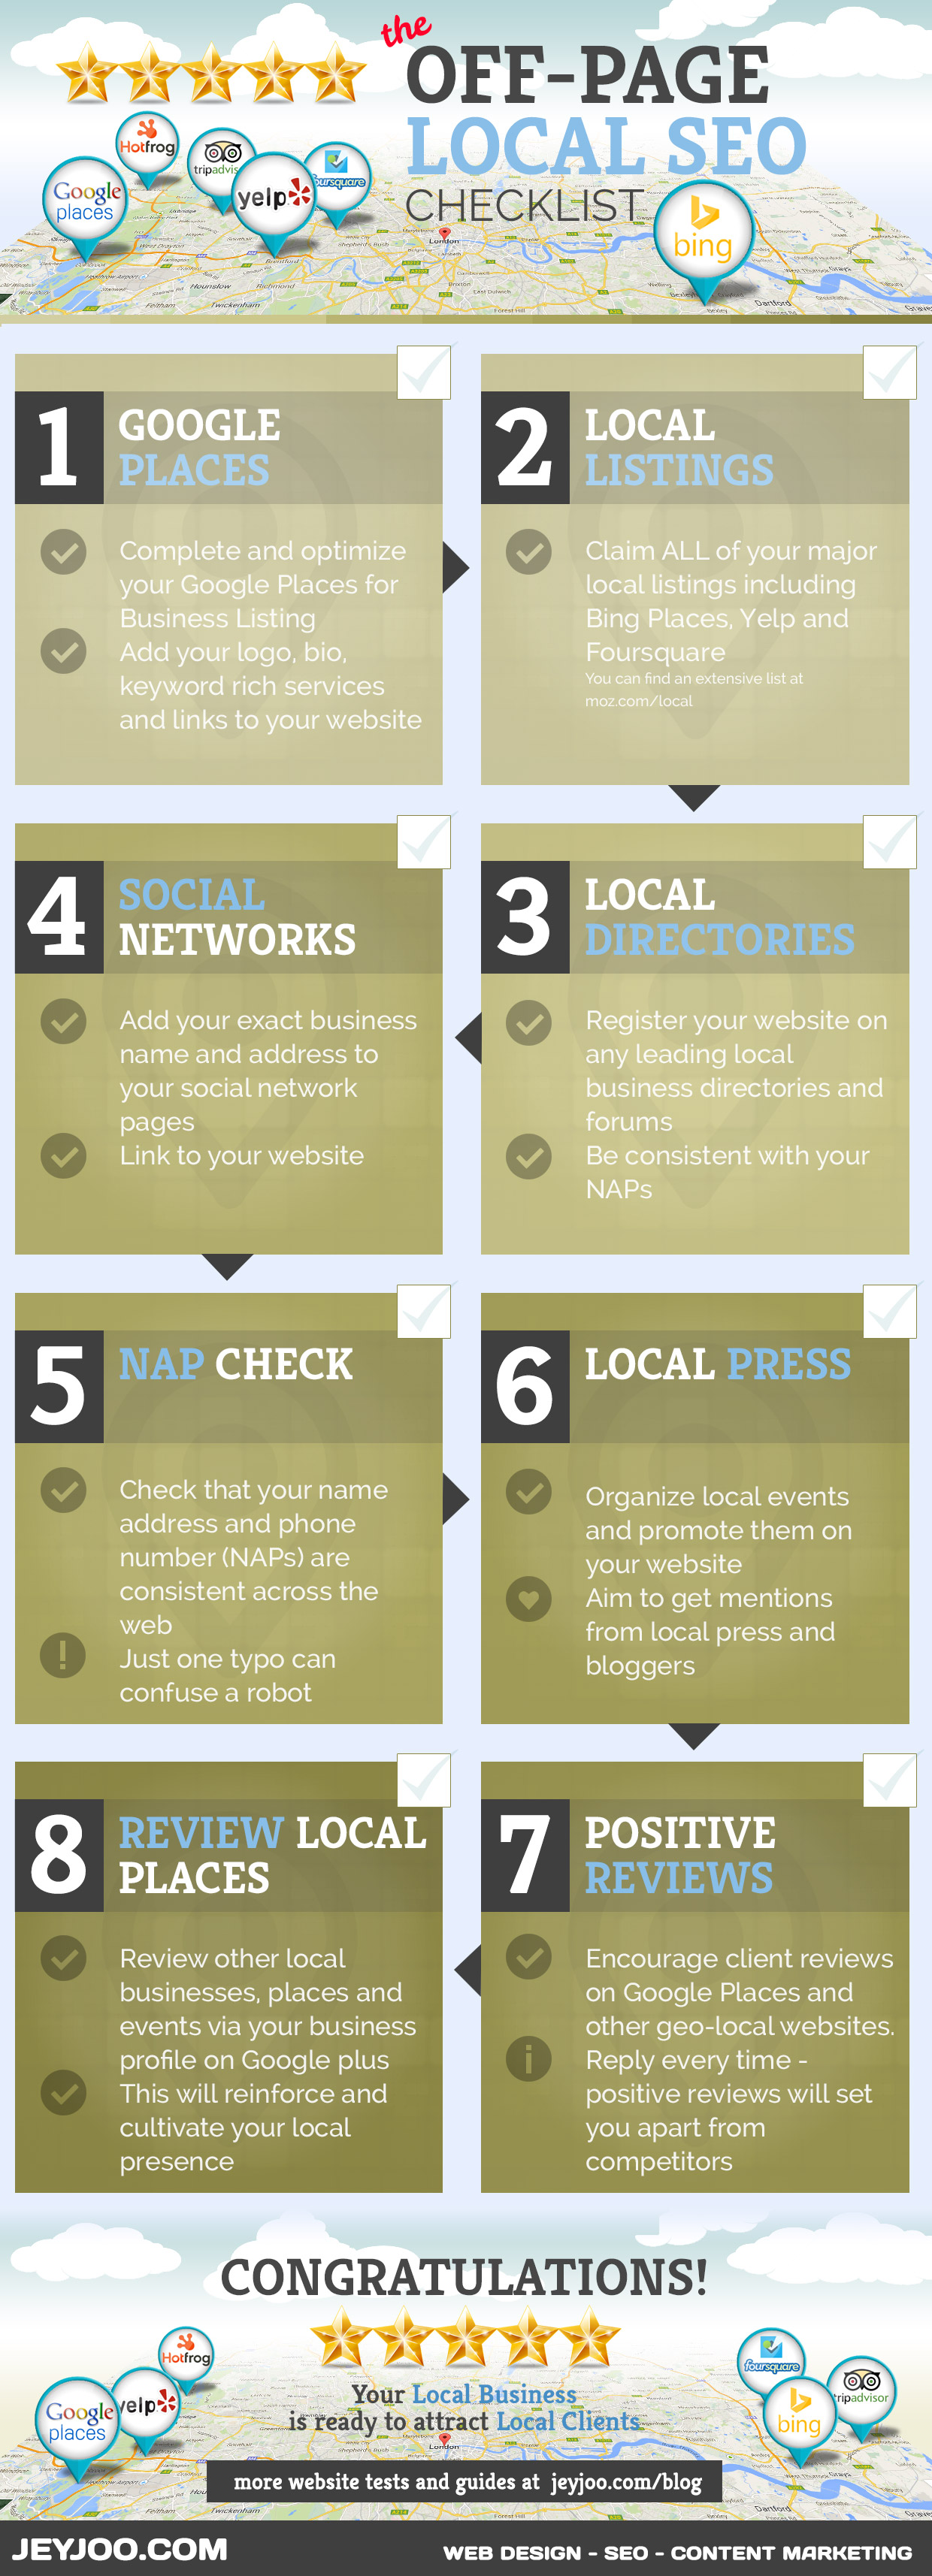 Get your business known locally with the Jeyjoo Local Business Off-Page SEO Checklist